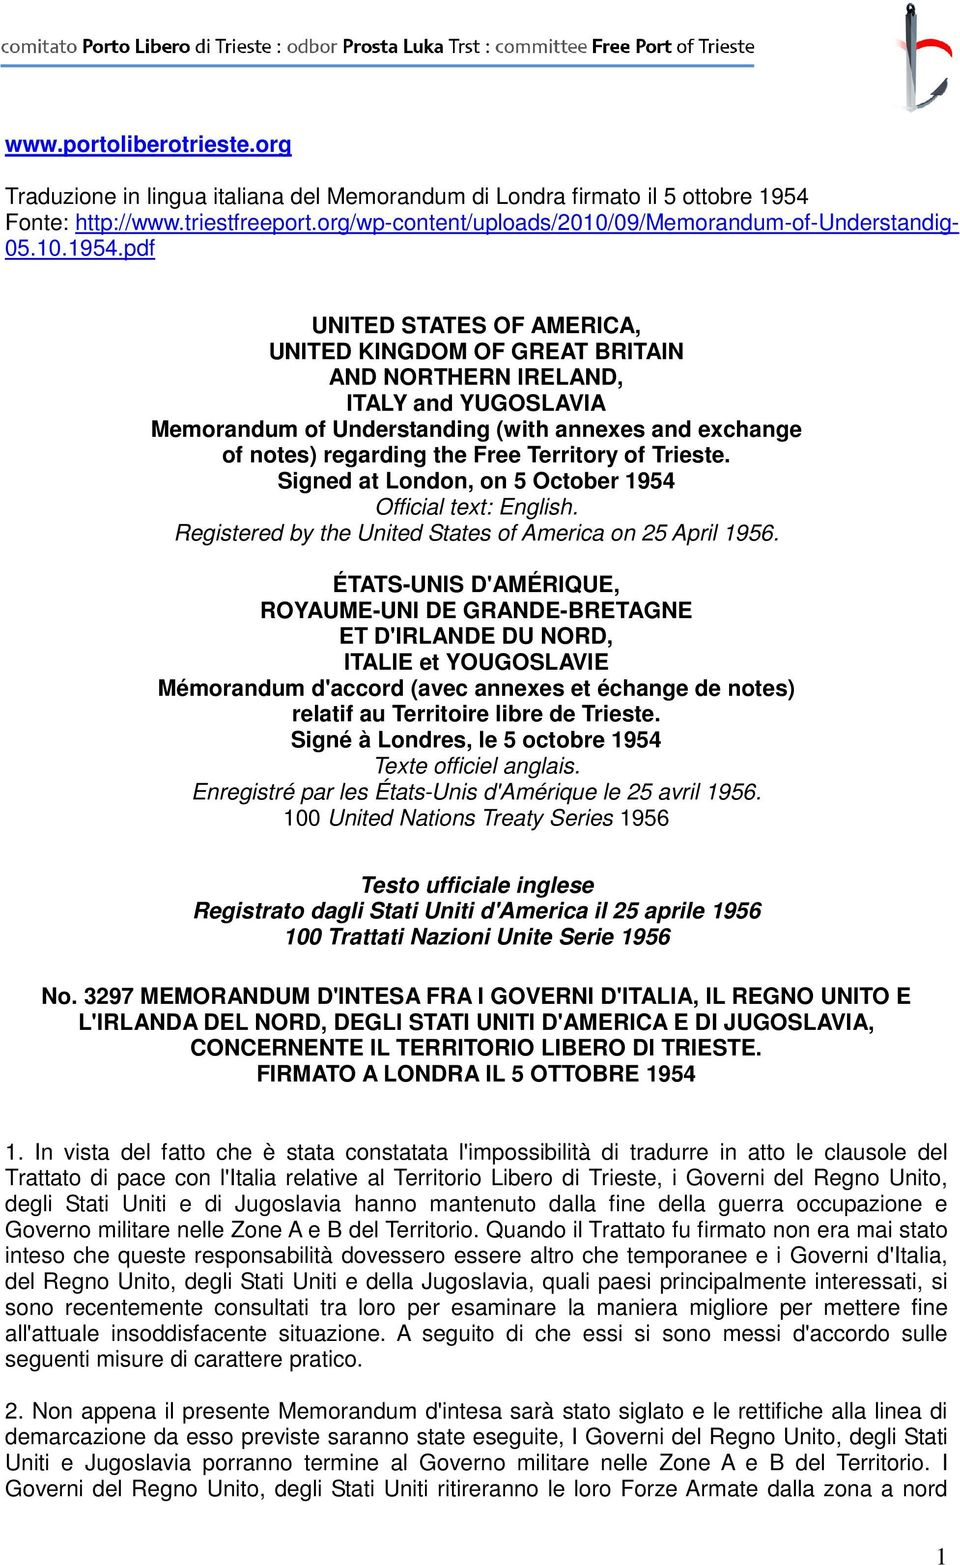 pdf UNITED STATES OF AMERICA, UNITED KINGDOM OF GREAT BRITAIN AND NORTHERN IRELAND, ITALY and YUGOSLAVIA Memorandum of Understanding (with annexes and exchange of notes) regarding the Free Territory